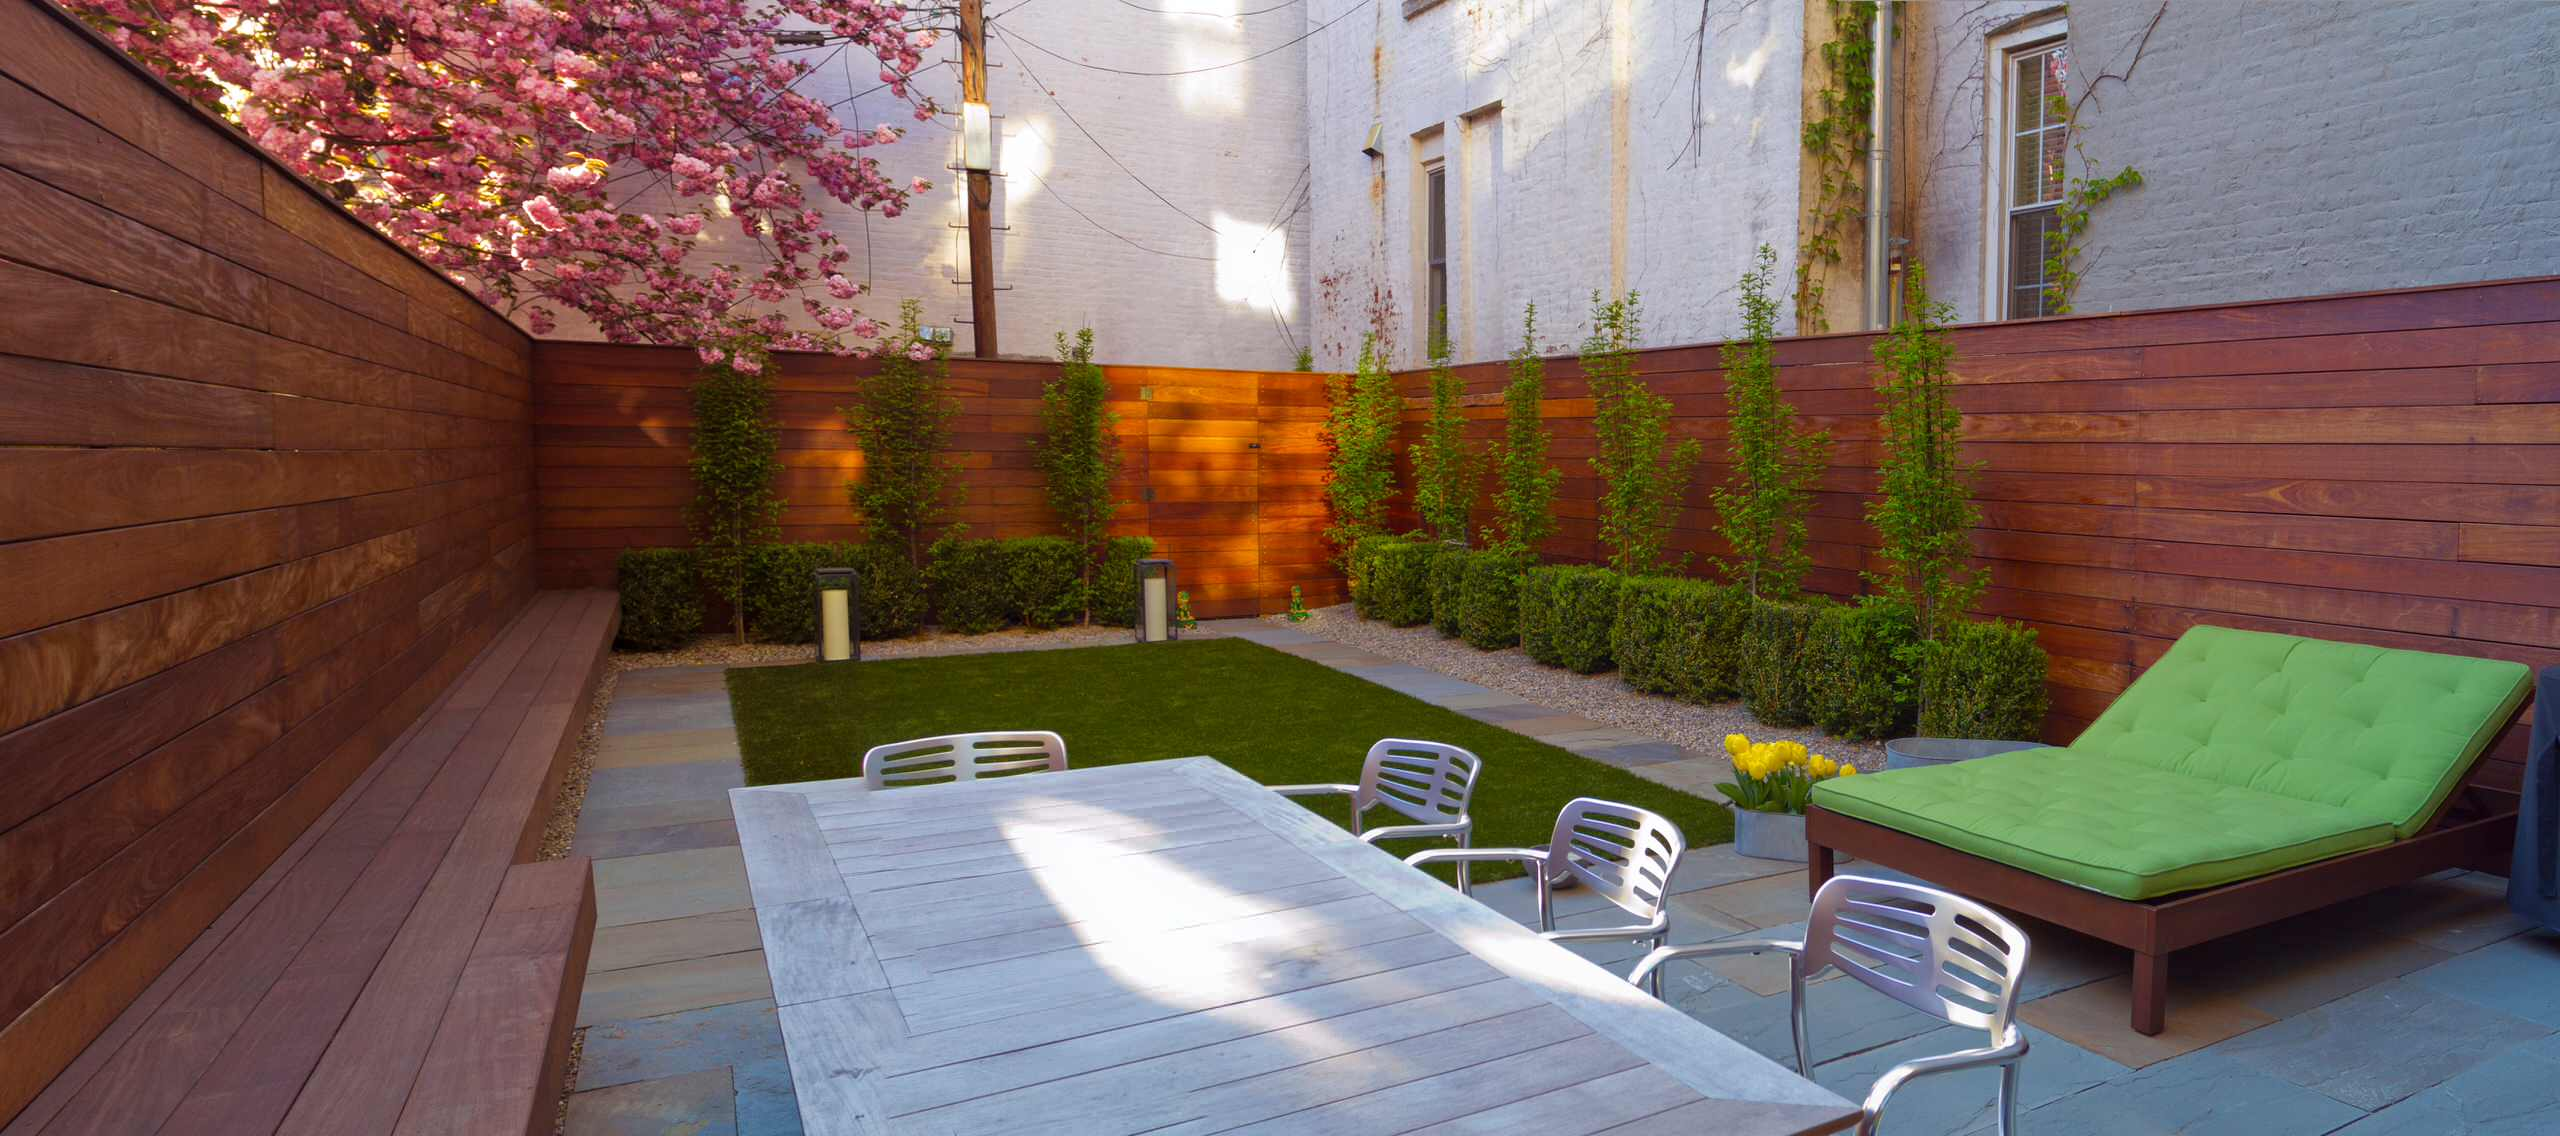 16 delightful modern landscape ideas that will update your Modern backyards